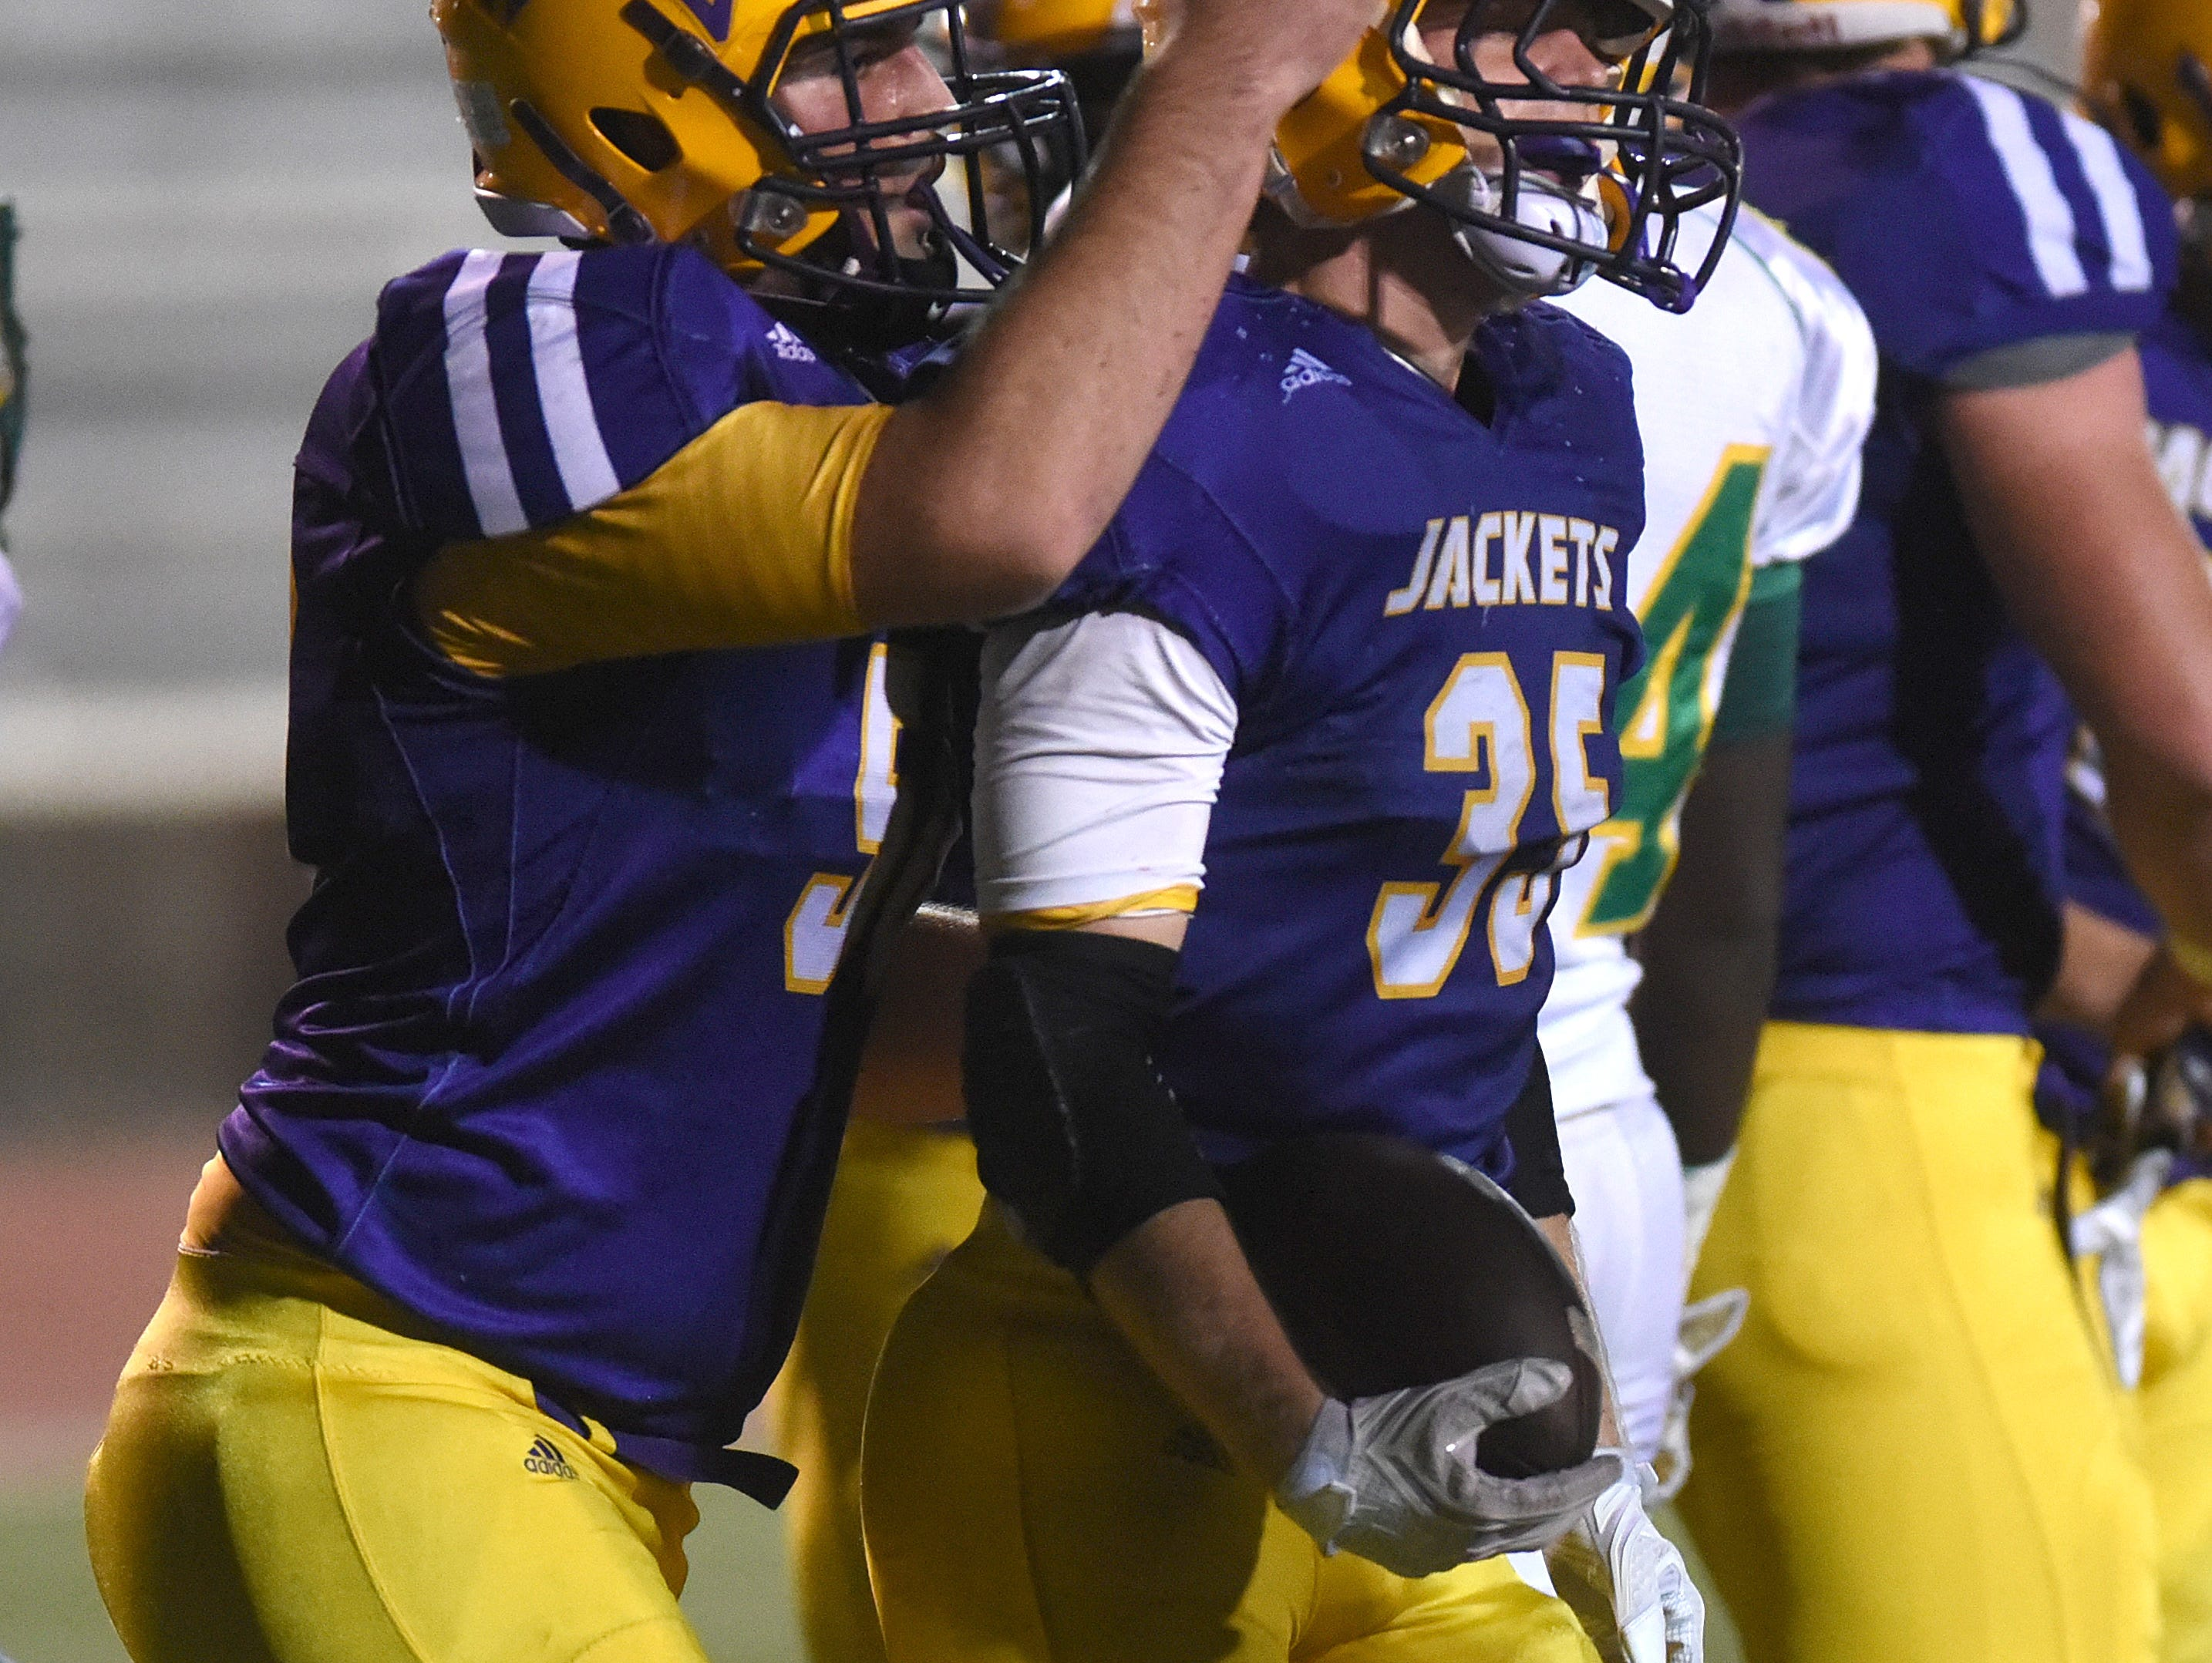 C.E. Byrd's Bailey Obyrne is congratulated after scoring his second touchdown against Green Oaks.